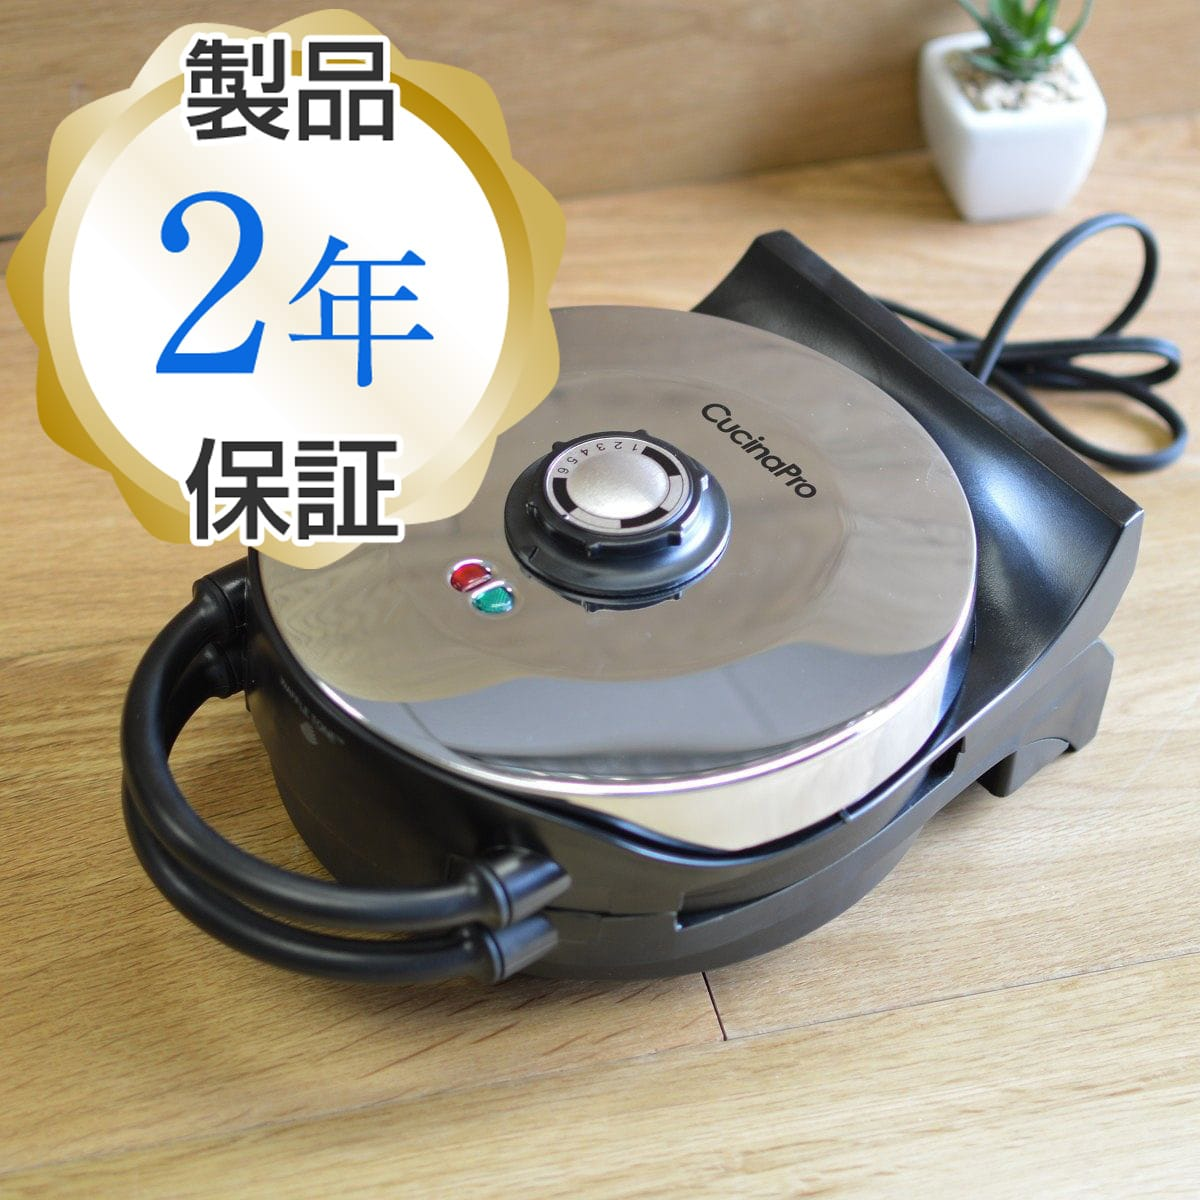 Alphaespace Cucina Pro Classic American Waffle Maker Cucinapro 1474